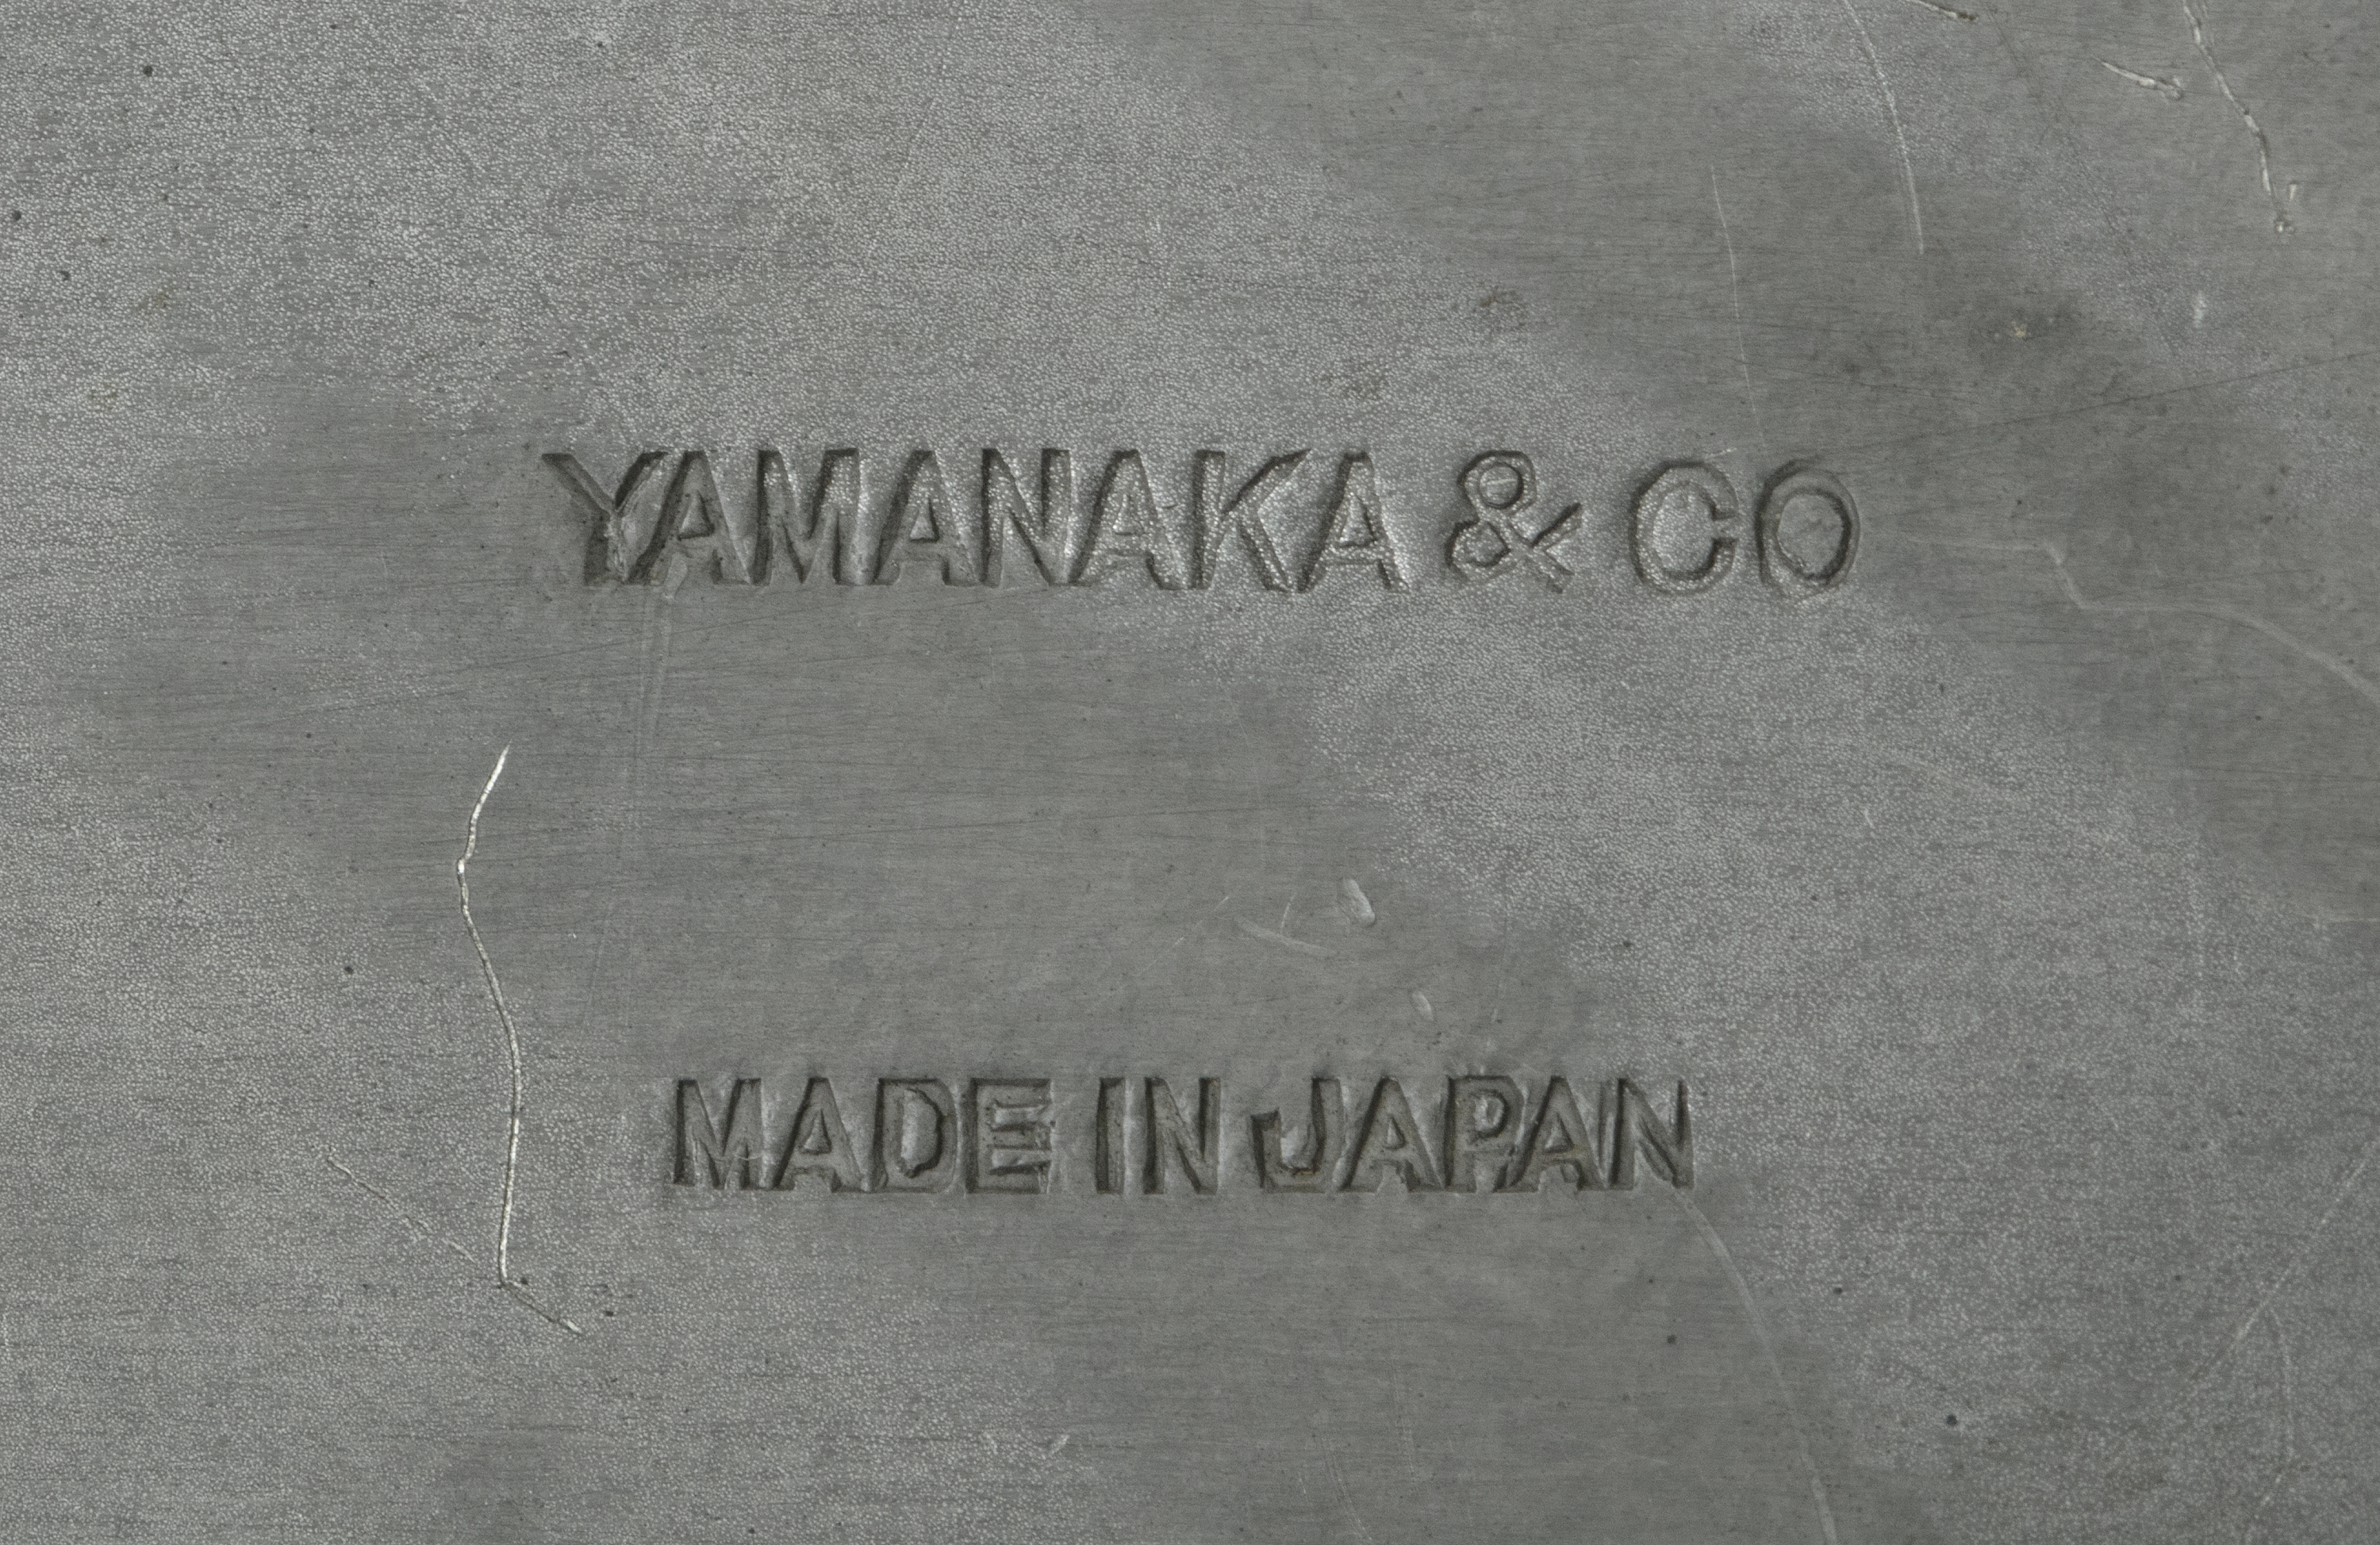 A PARCEL LACQUERED PEWTER LIDDED BOX SET WITH A JADE PIECE BY YAMANAKA & CO The box made in Japan, - Image 7 of 15